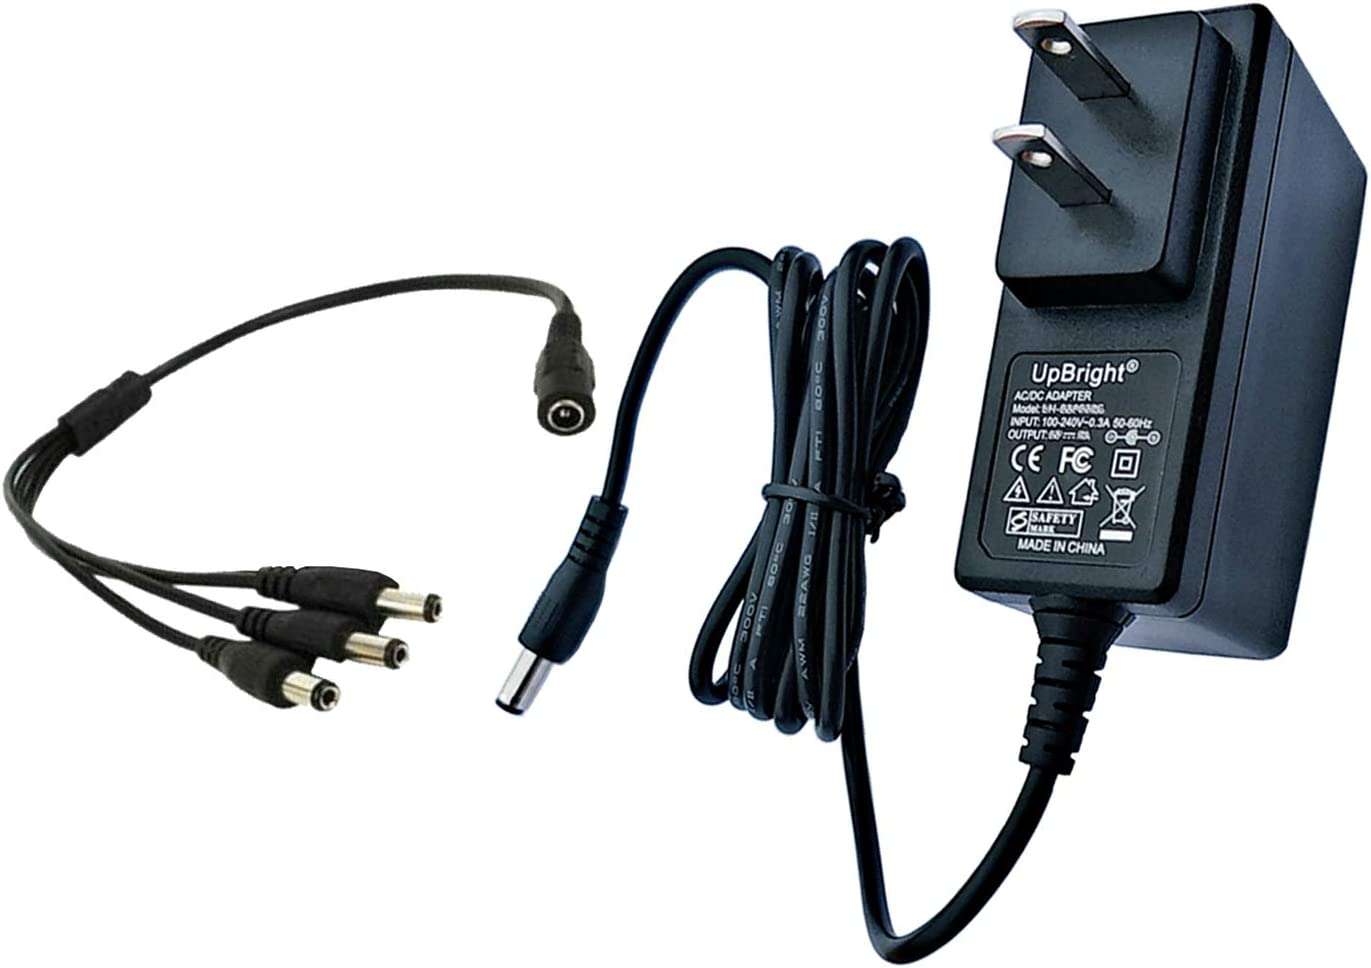 UpBright AC Adapter Compatible with Lemax Lighted Accessory 4.5V # 74707 74295 84428 44242 94565 94566 94527 94563 94564 44241 64517 74269 74274 Christmas Village Spooky Town 4.5VDC 5V DC Power Supply